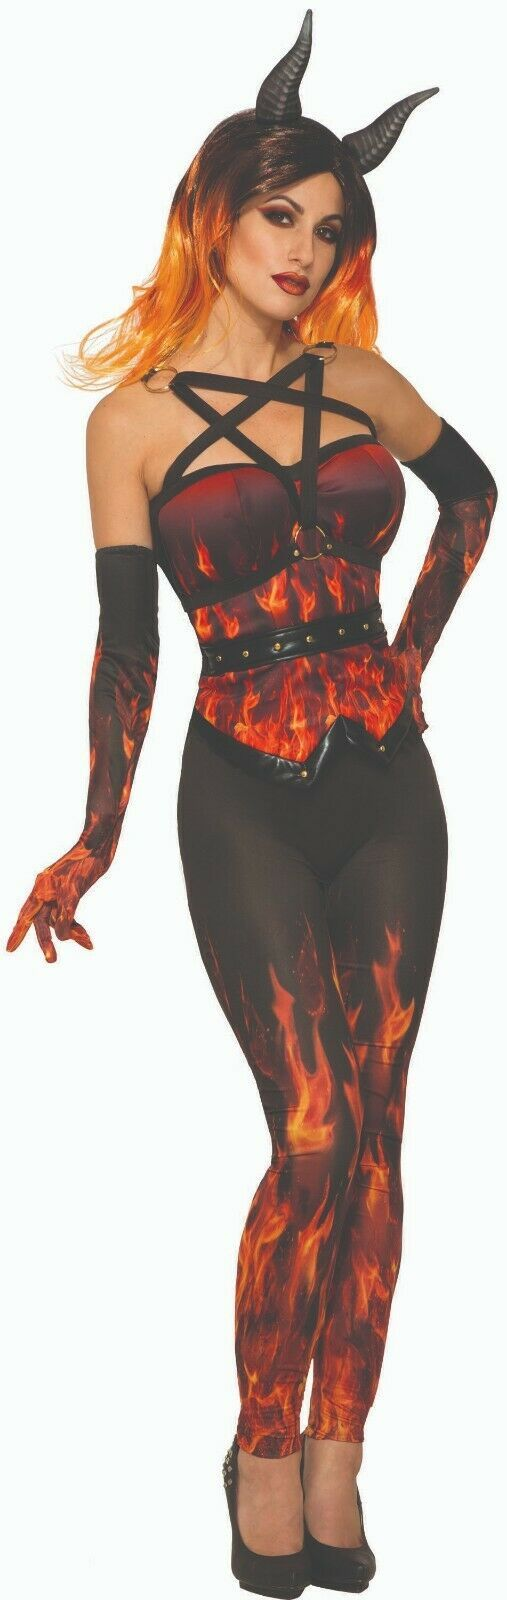 Primary image for Forum Novelties Demons & Devils Fire Corset Adult Womens Halloween Costume 80746